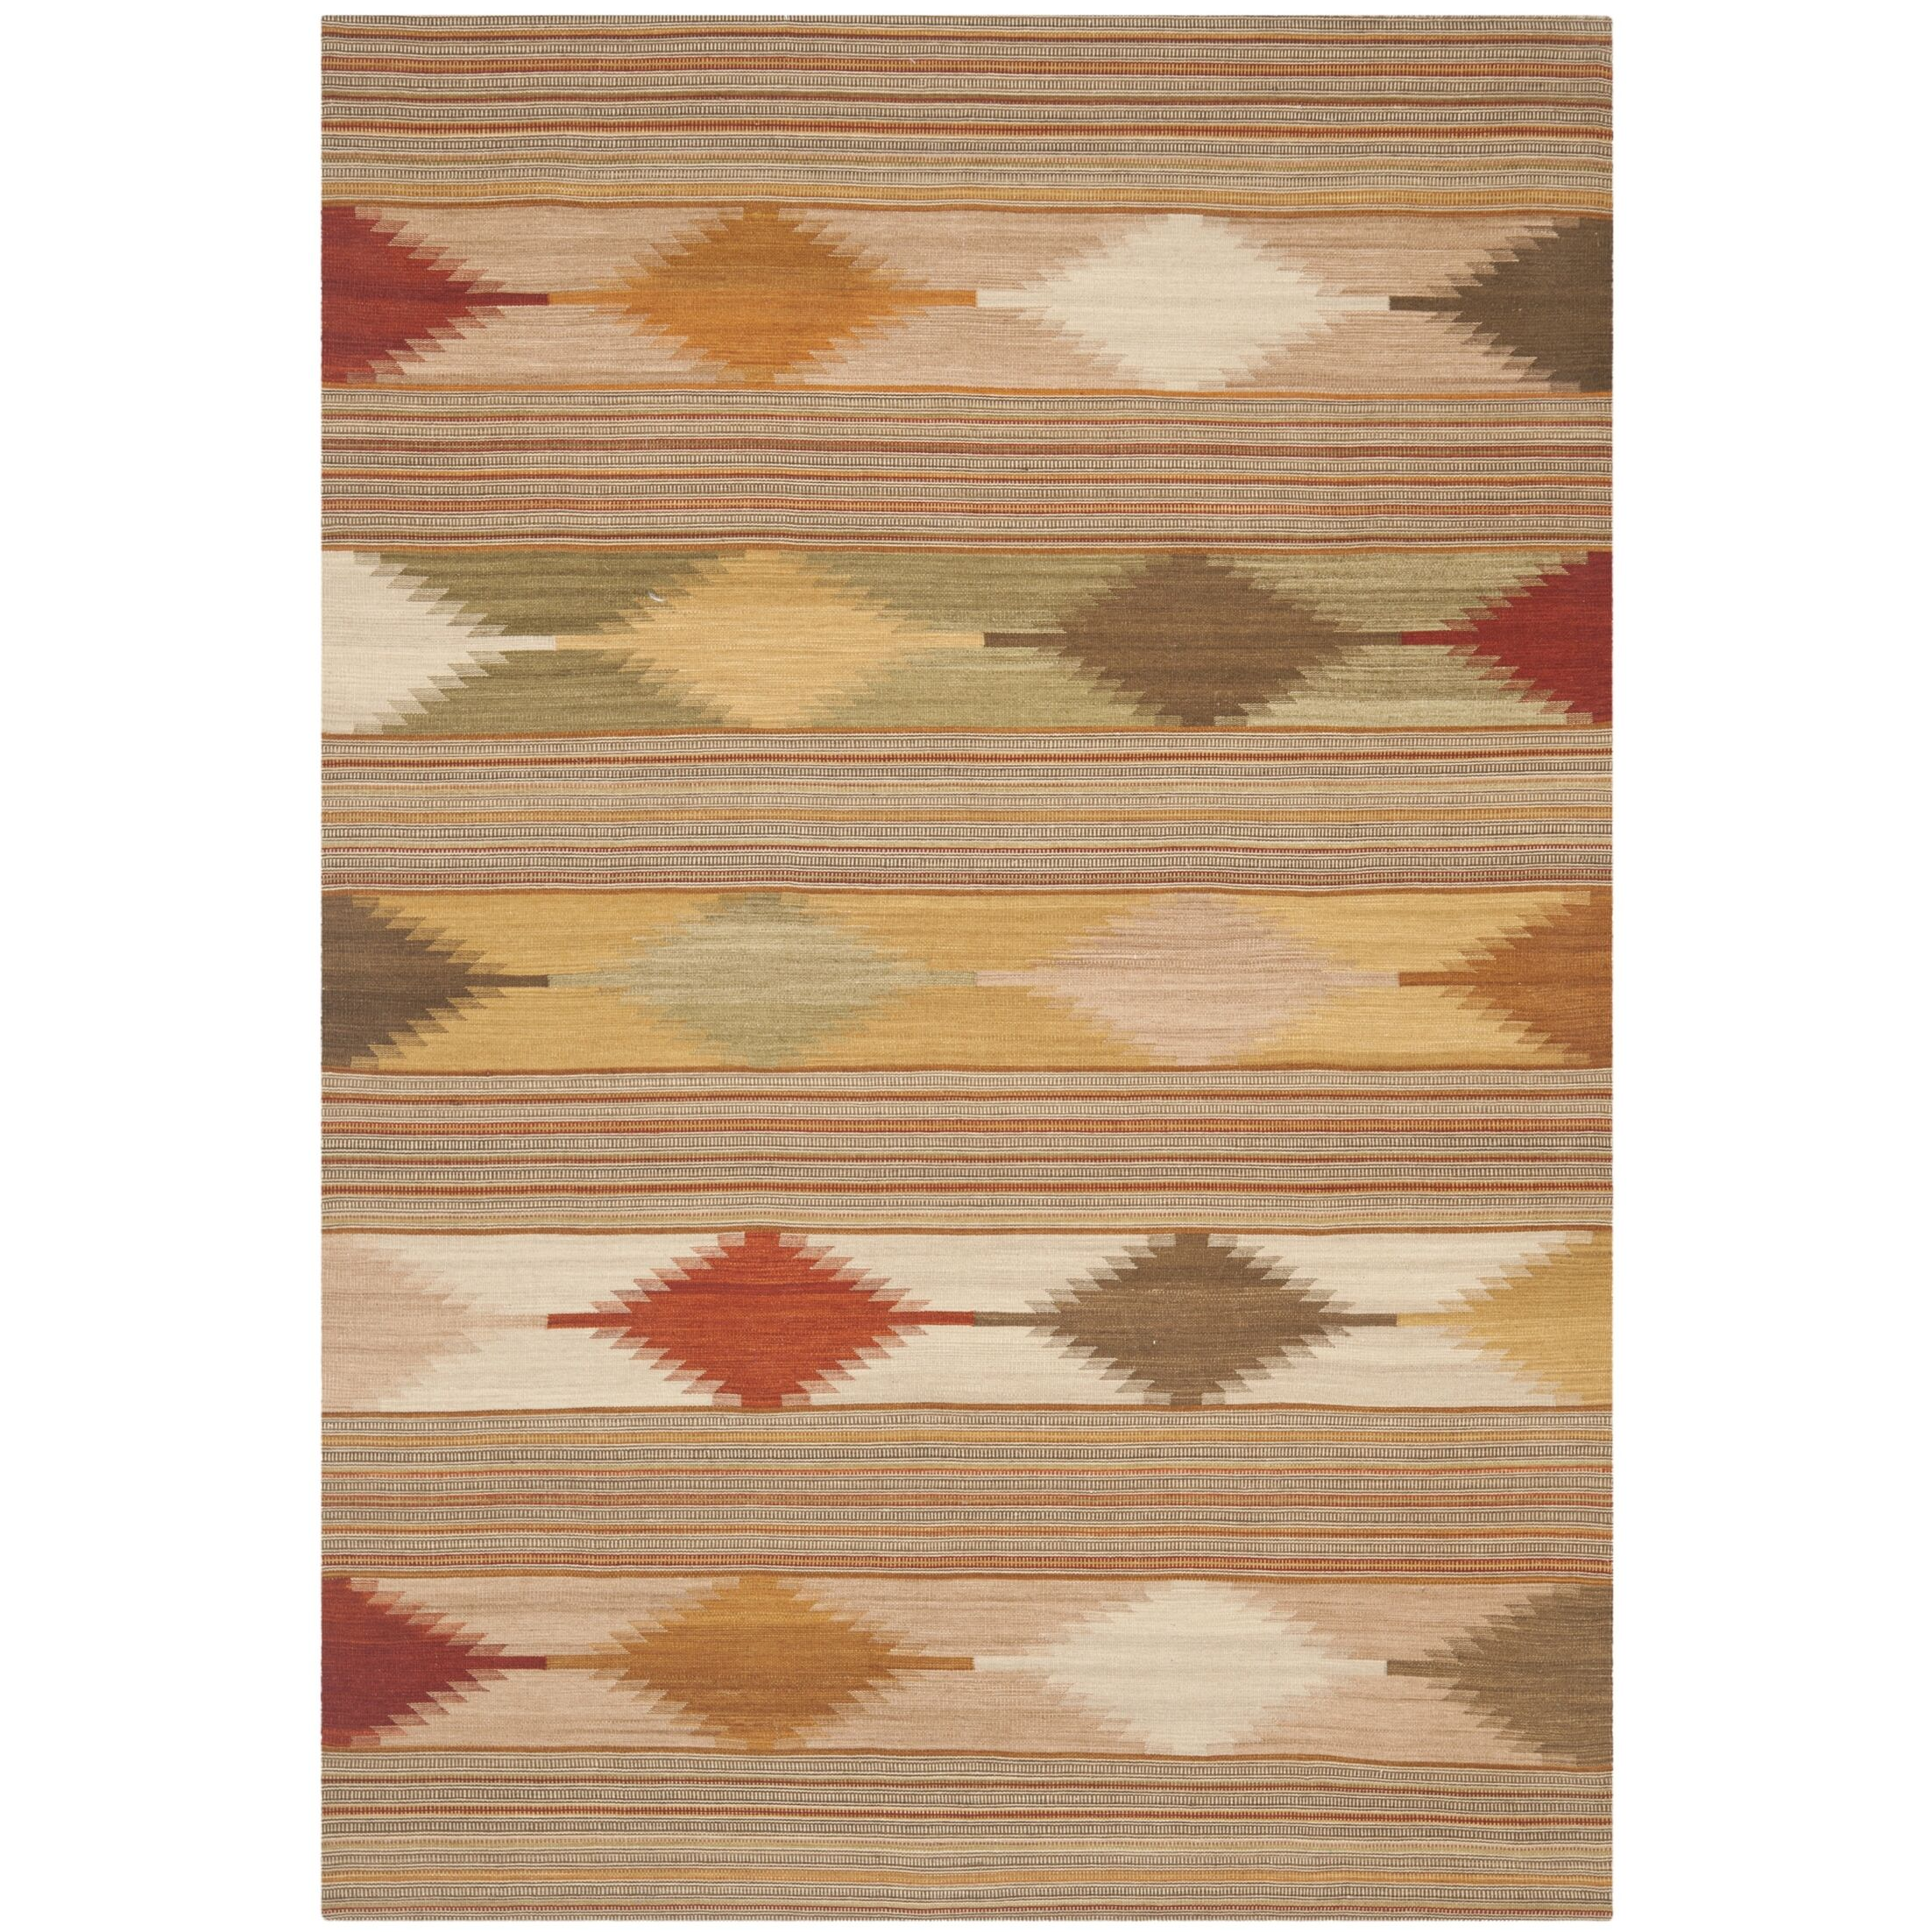 Vacaville Brown & Tan Area Rug Rug Size: Rectangle 6' x 9'